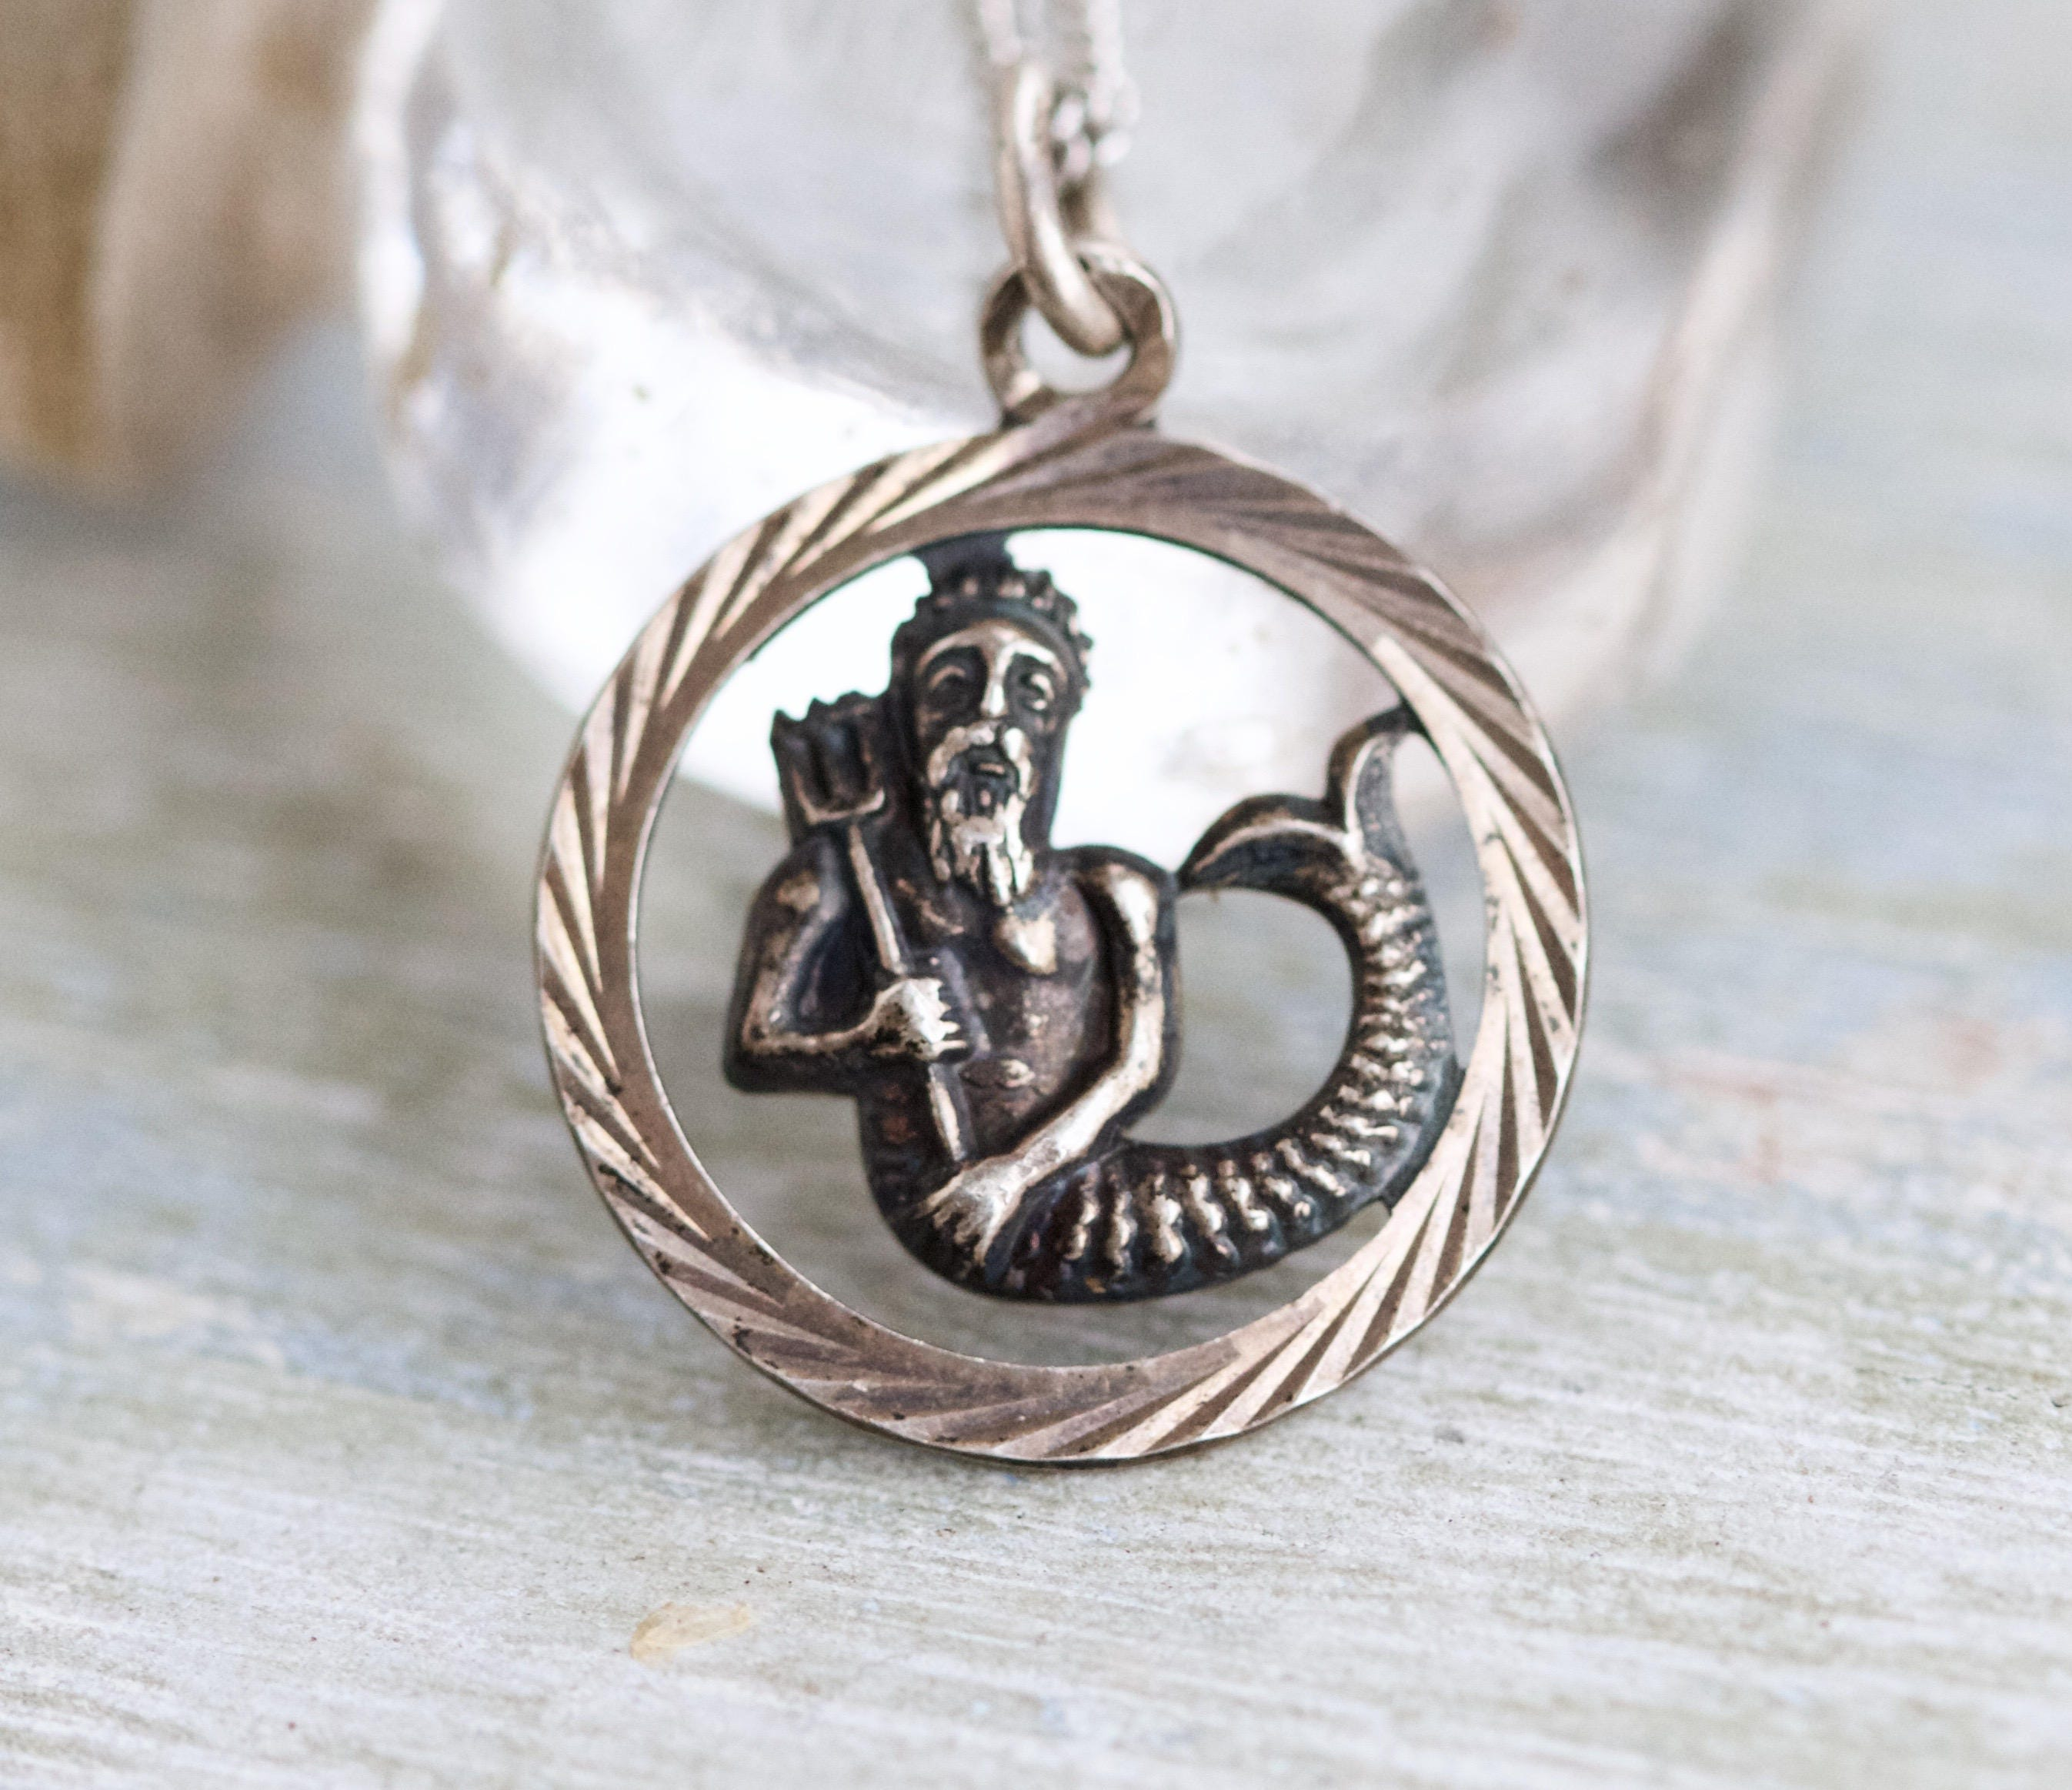 greek portfolio key tassos samourakis page silver with rodes jewelry at pendant gold spiral